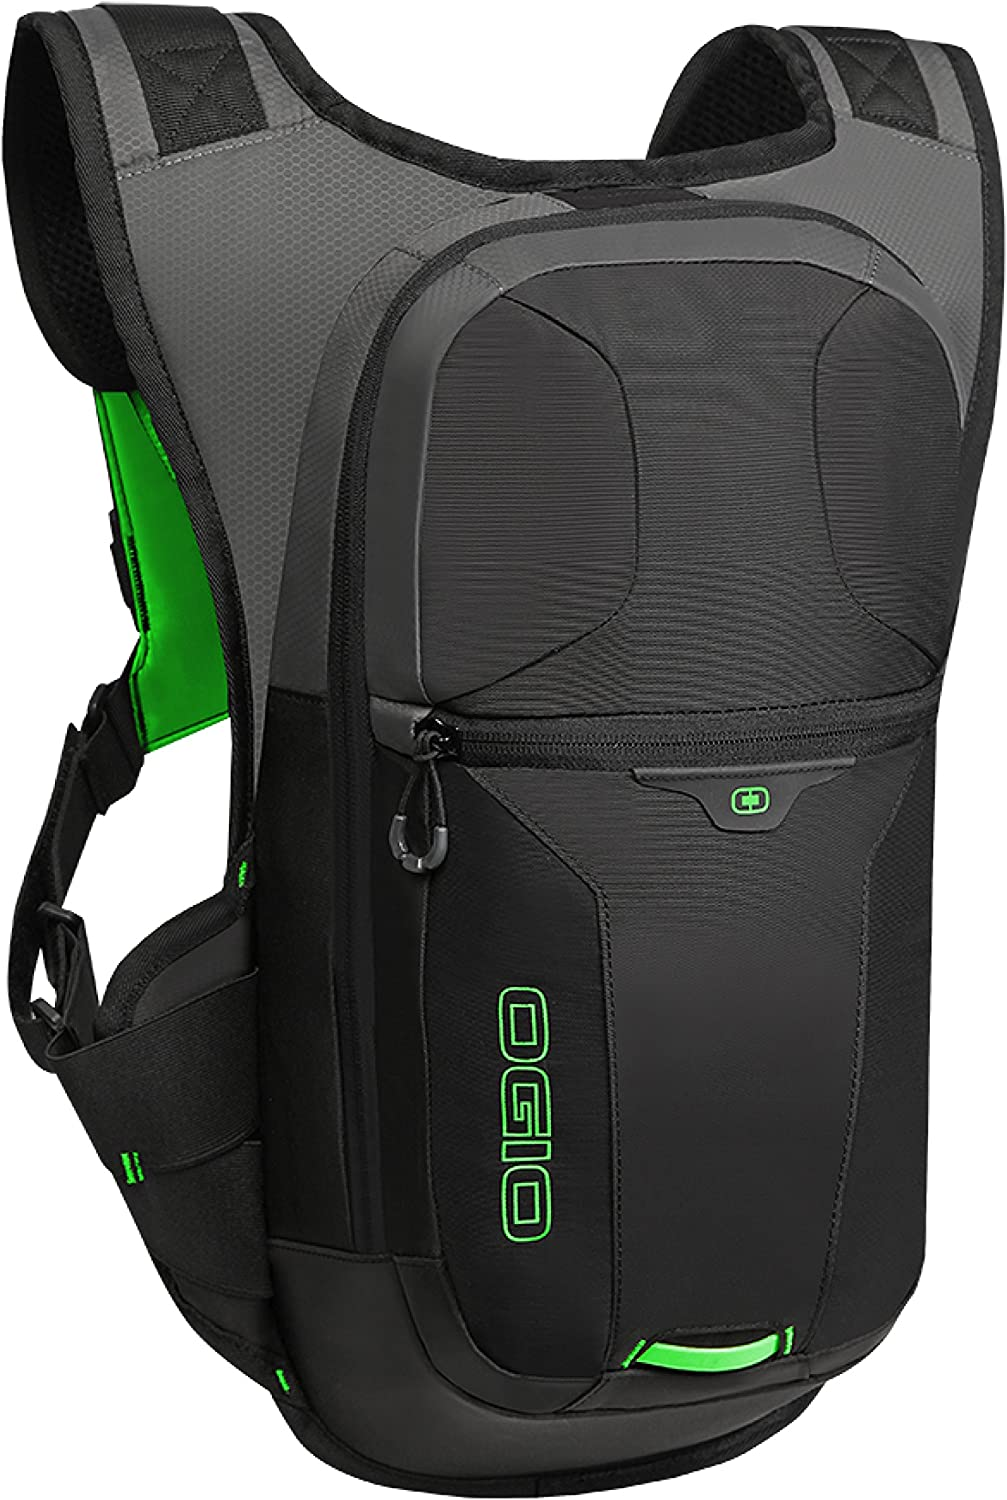 Ogio Hydration Backpack For Running